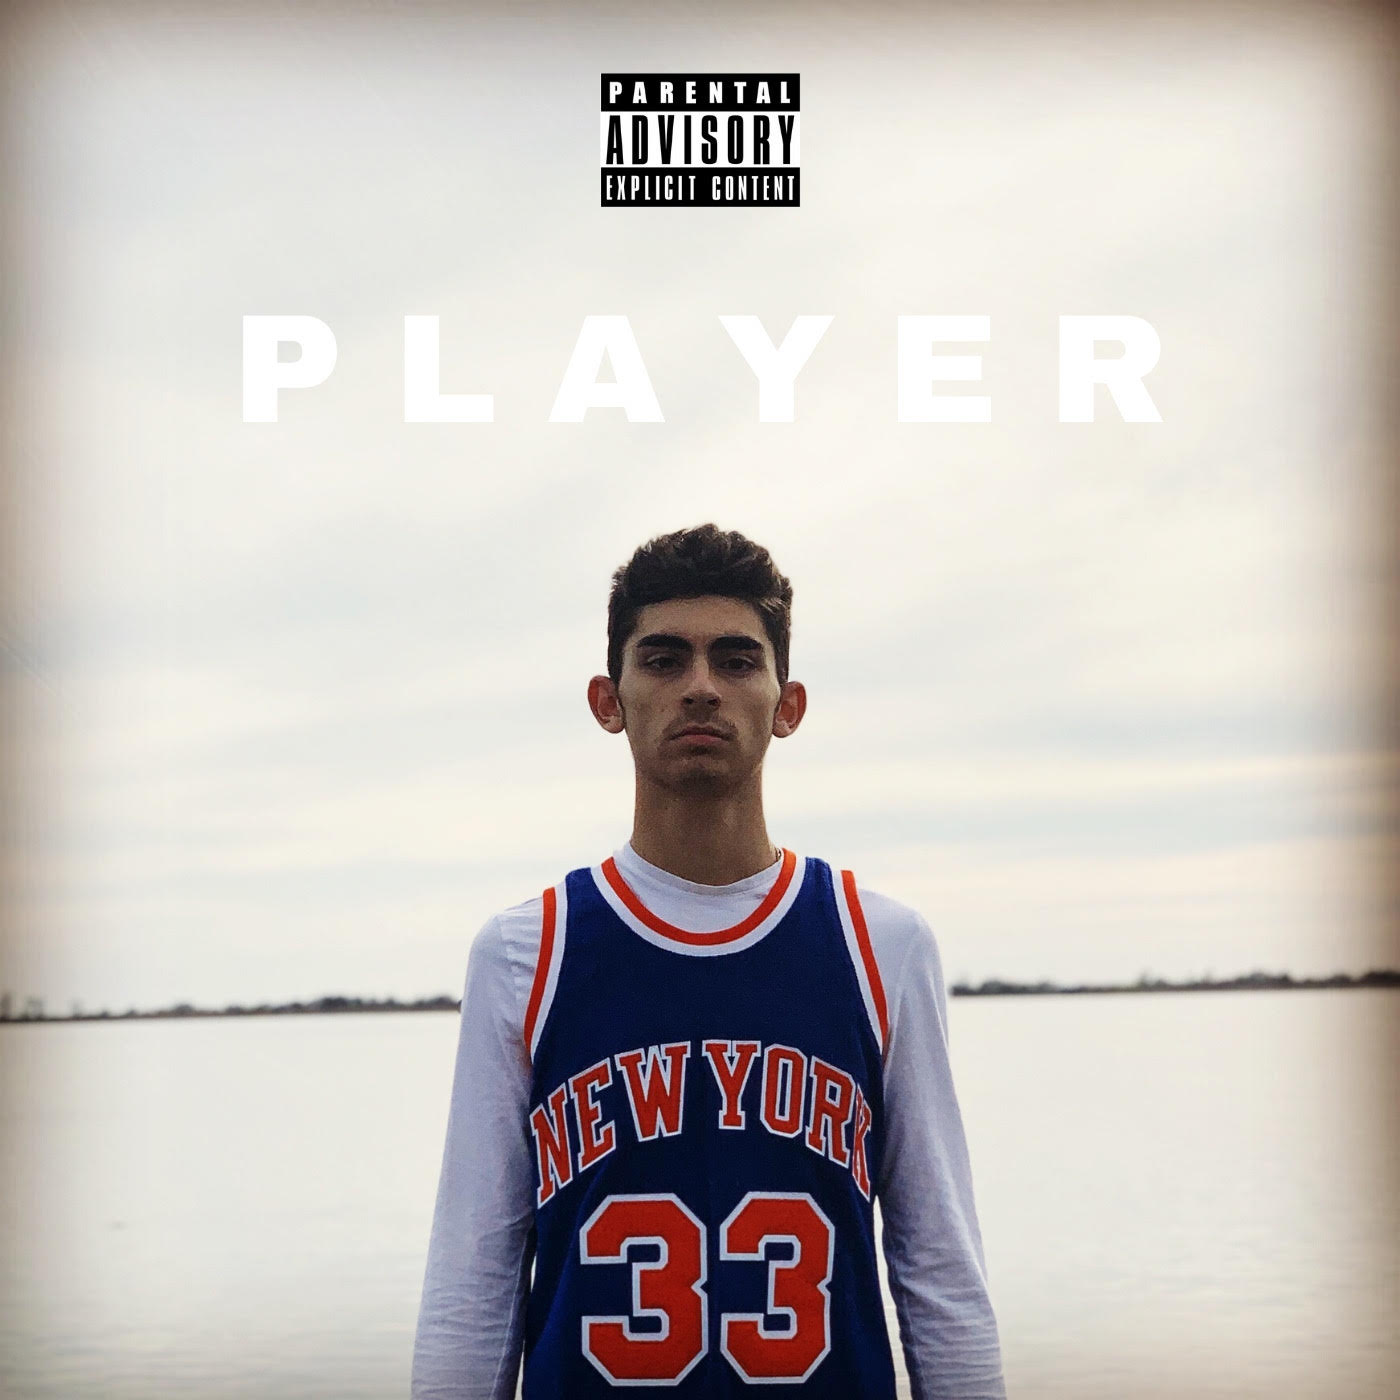 Jesse Eplan - Player